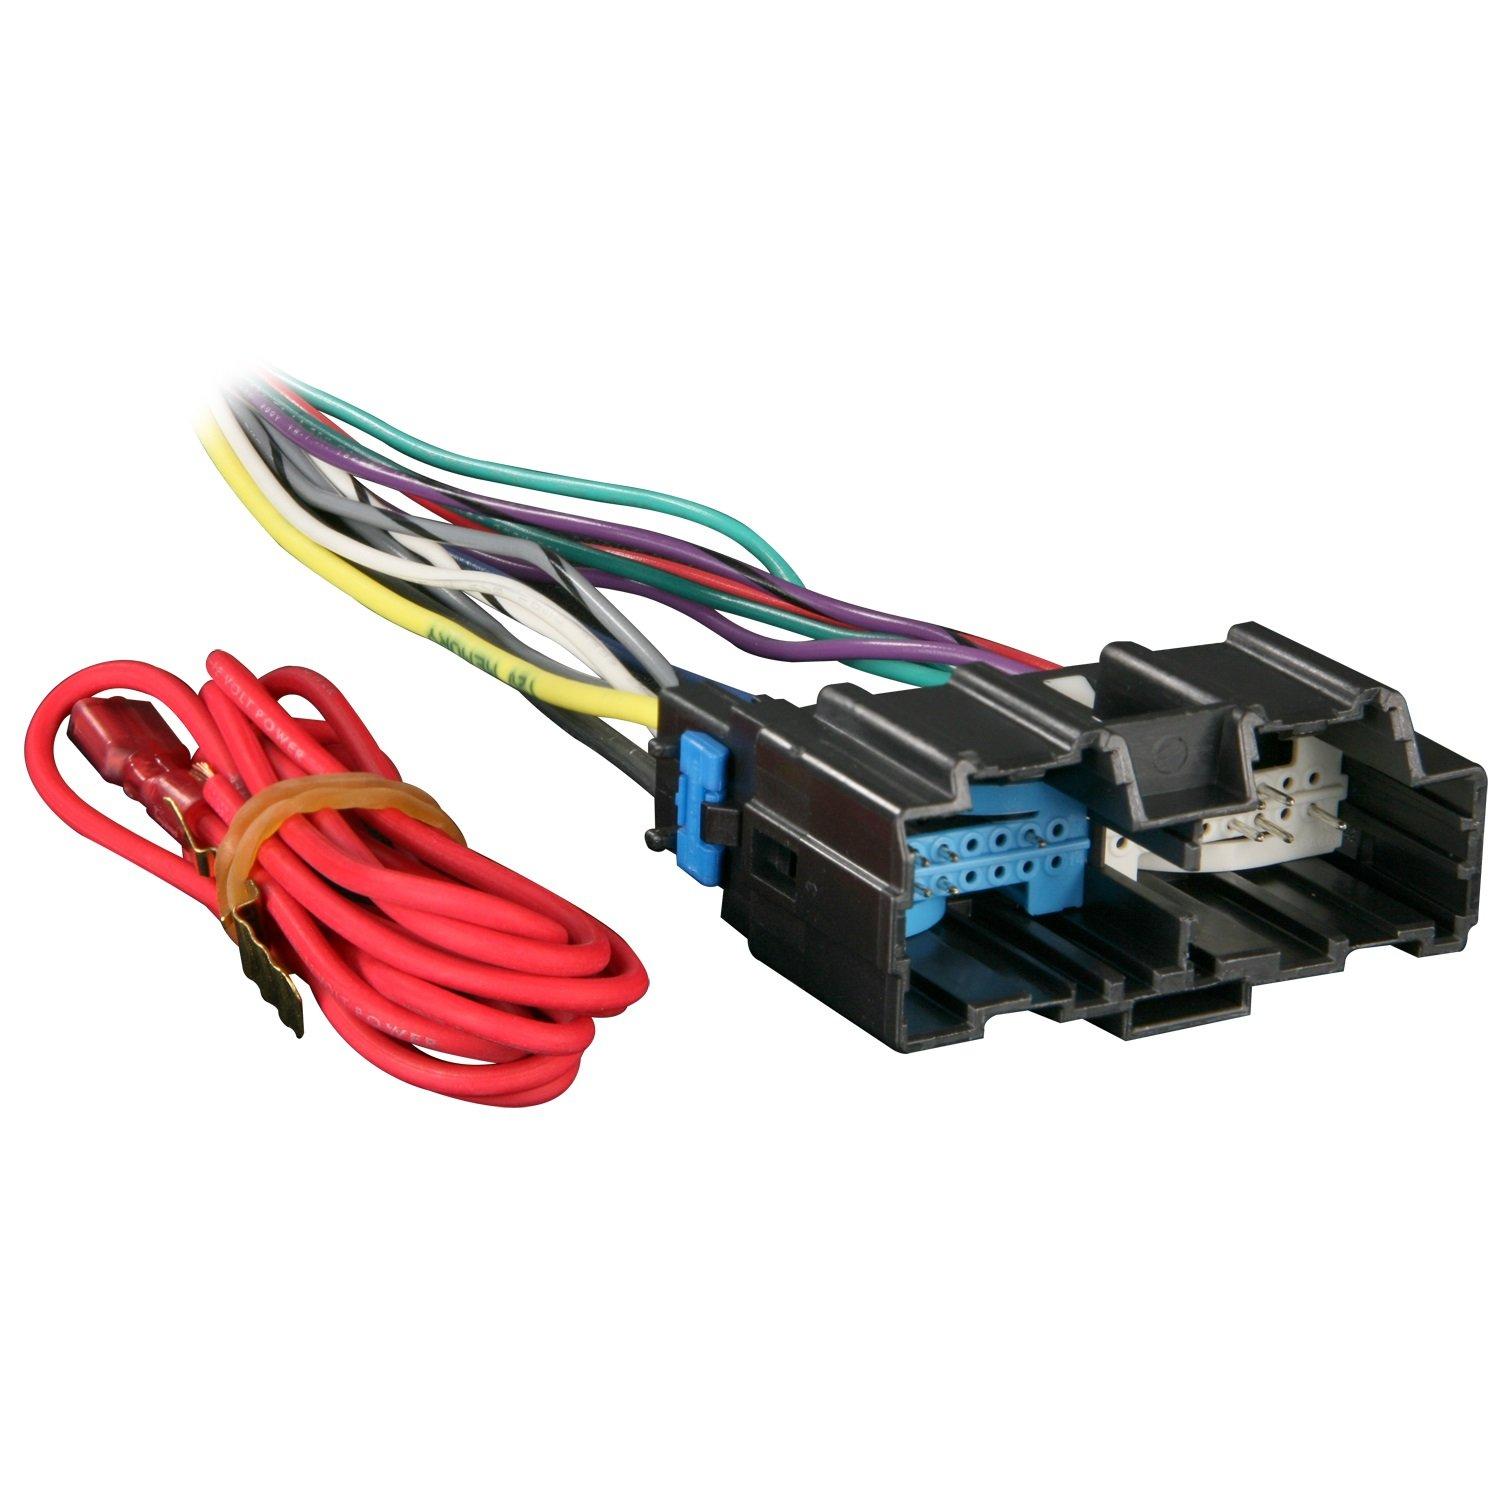 71ZzH dyg7L._SL1500_ amazon com metra 70 2105 radio wiring harness for impala monte  at honlapkeszites.co